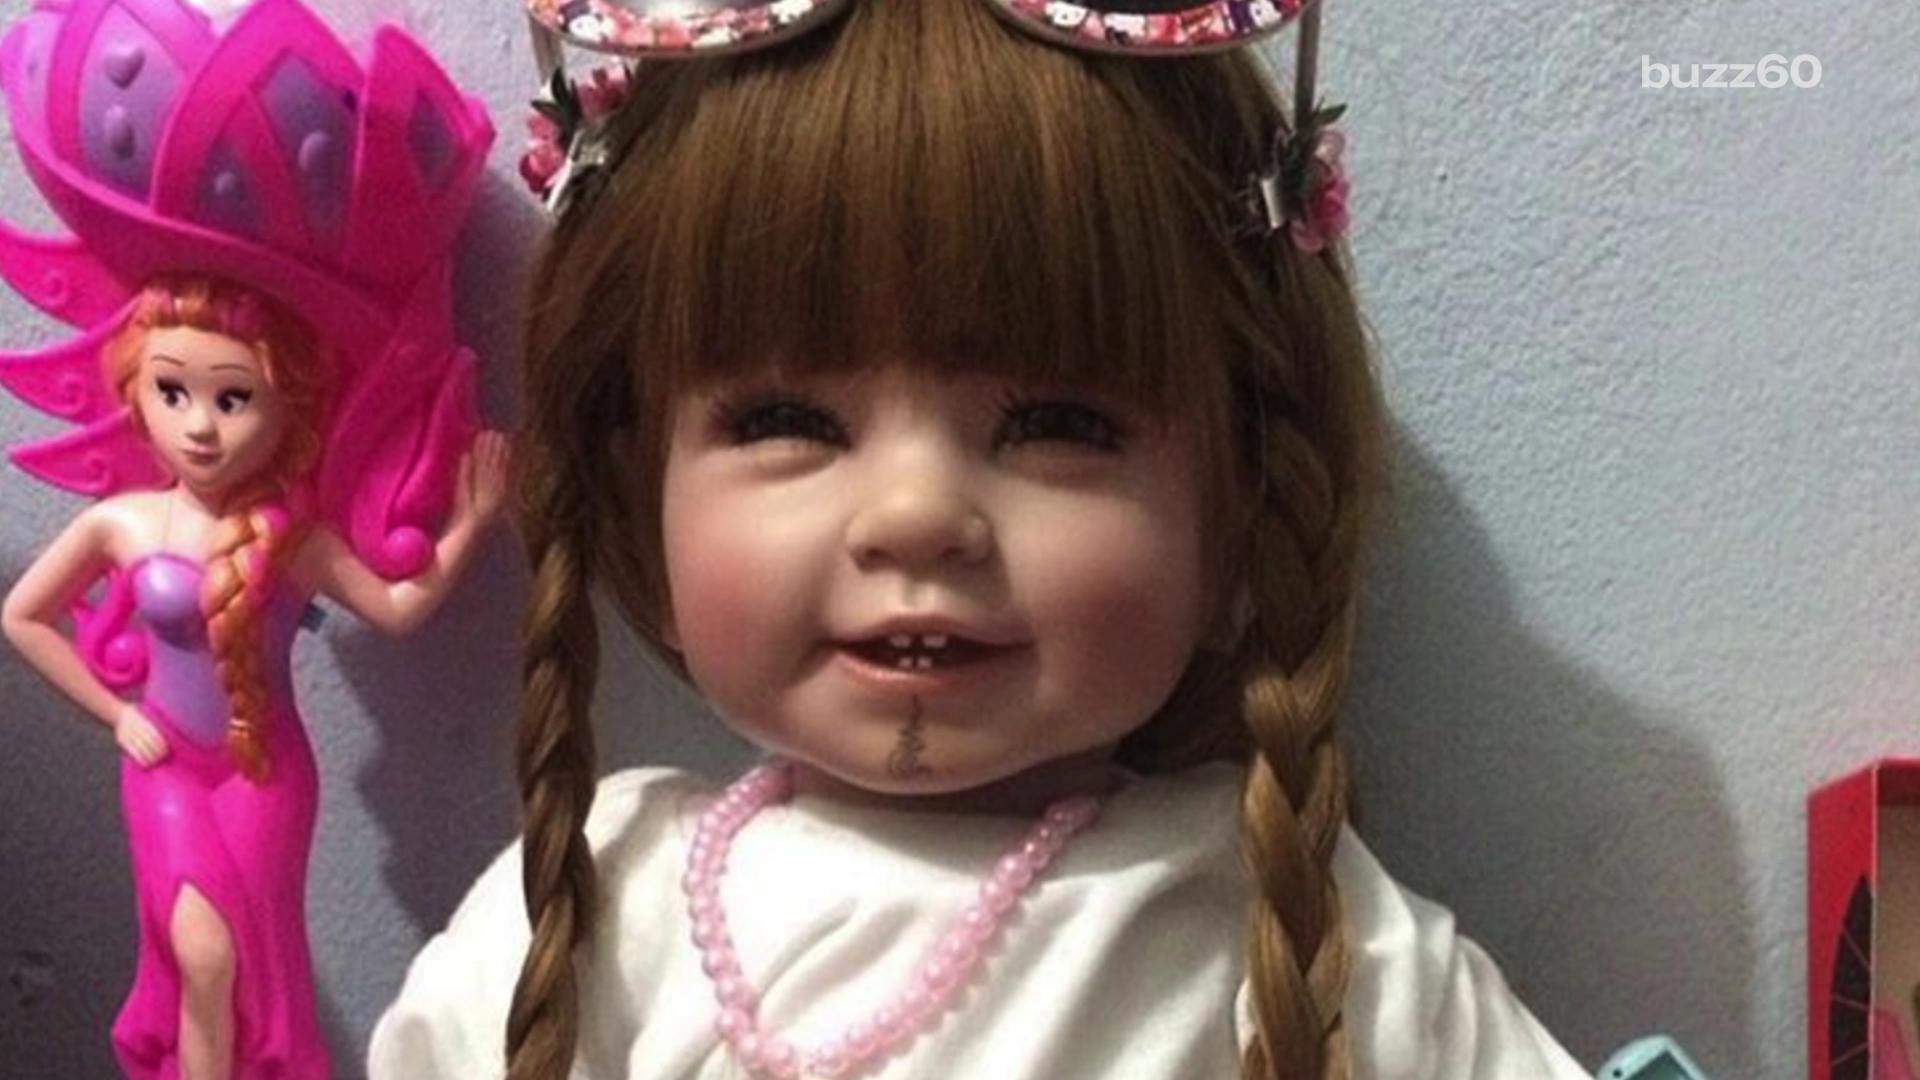 Airline to treat 'possessed' dolls like people